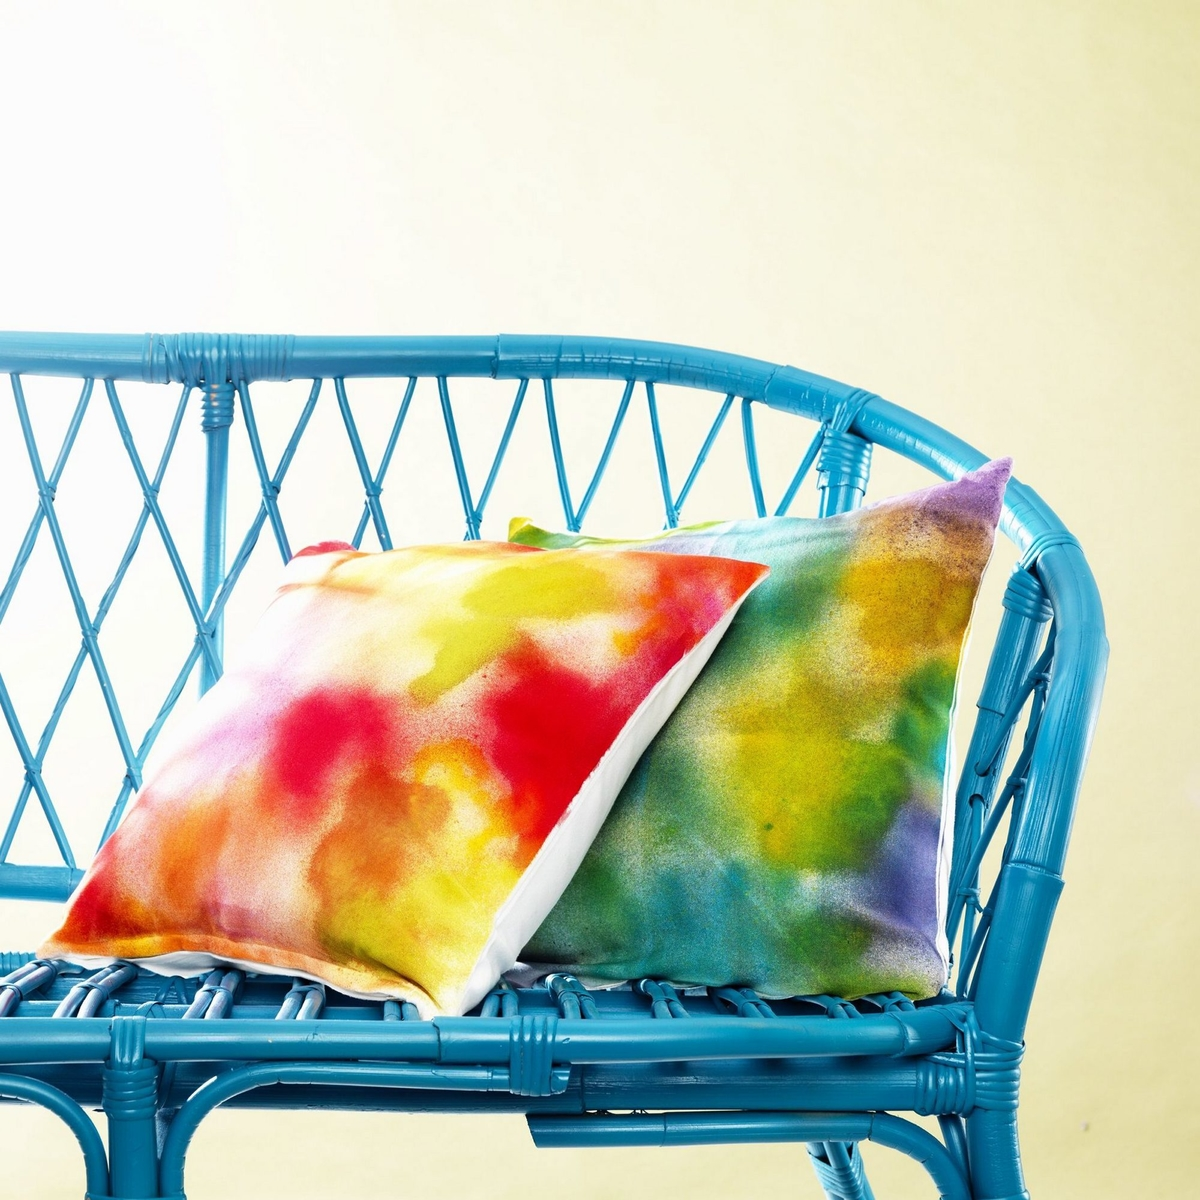 Fabric paint on cushions